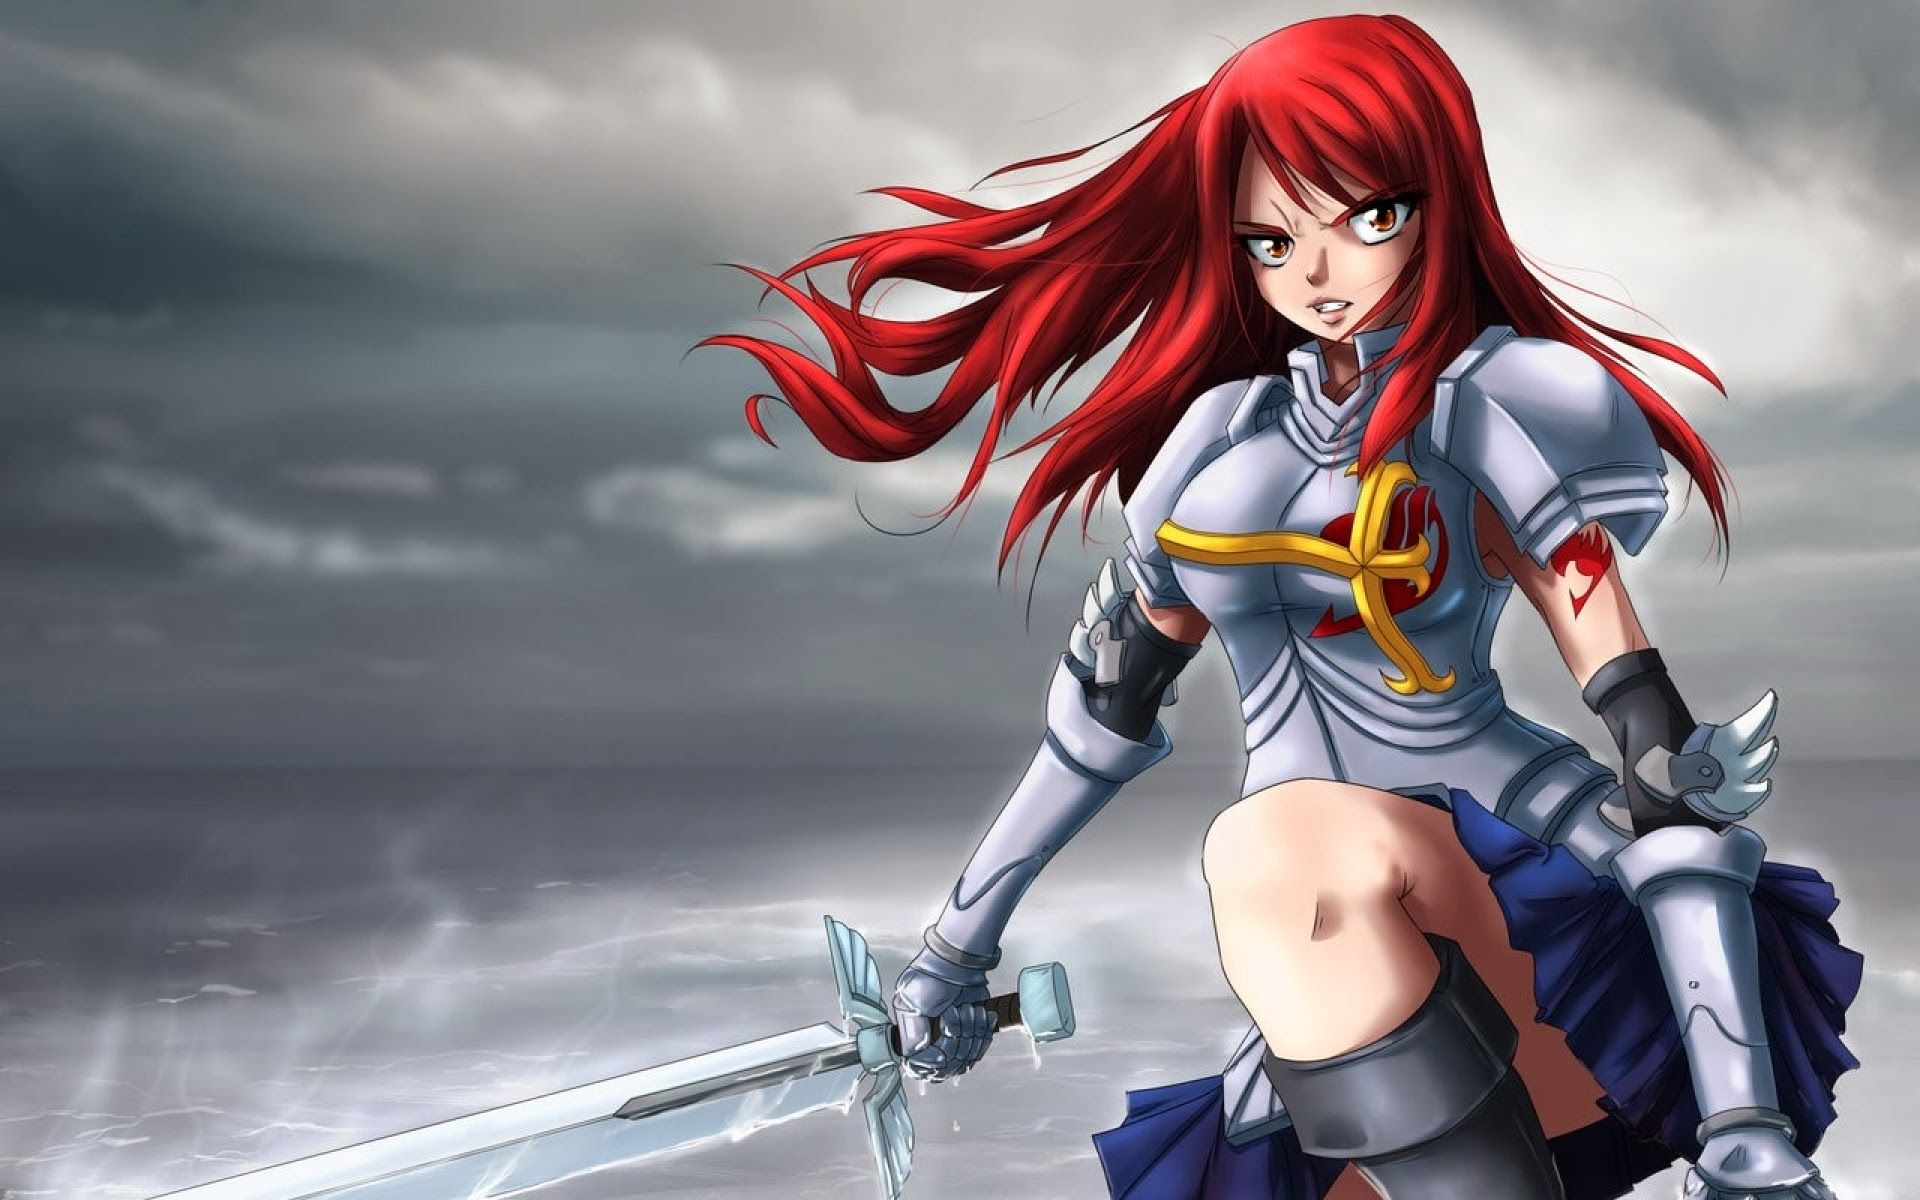 Erza Scarlet Armor Sword Fairy Tail Anime Hd Wallpaper Fairy